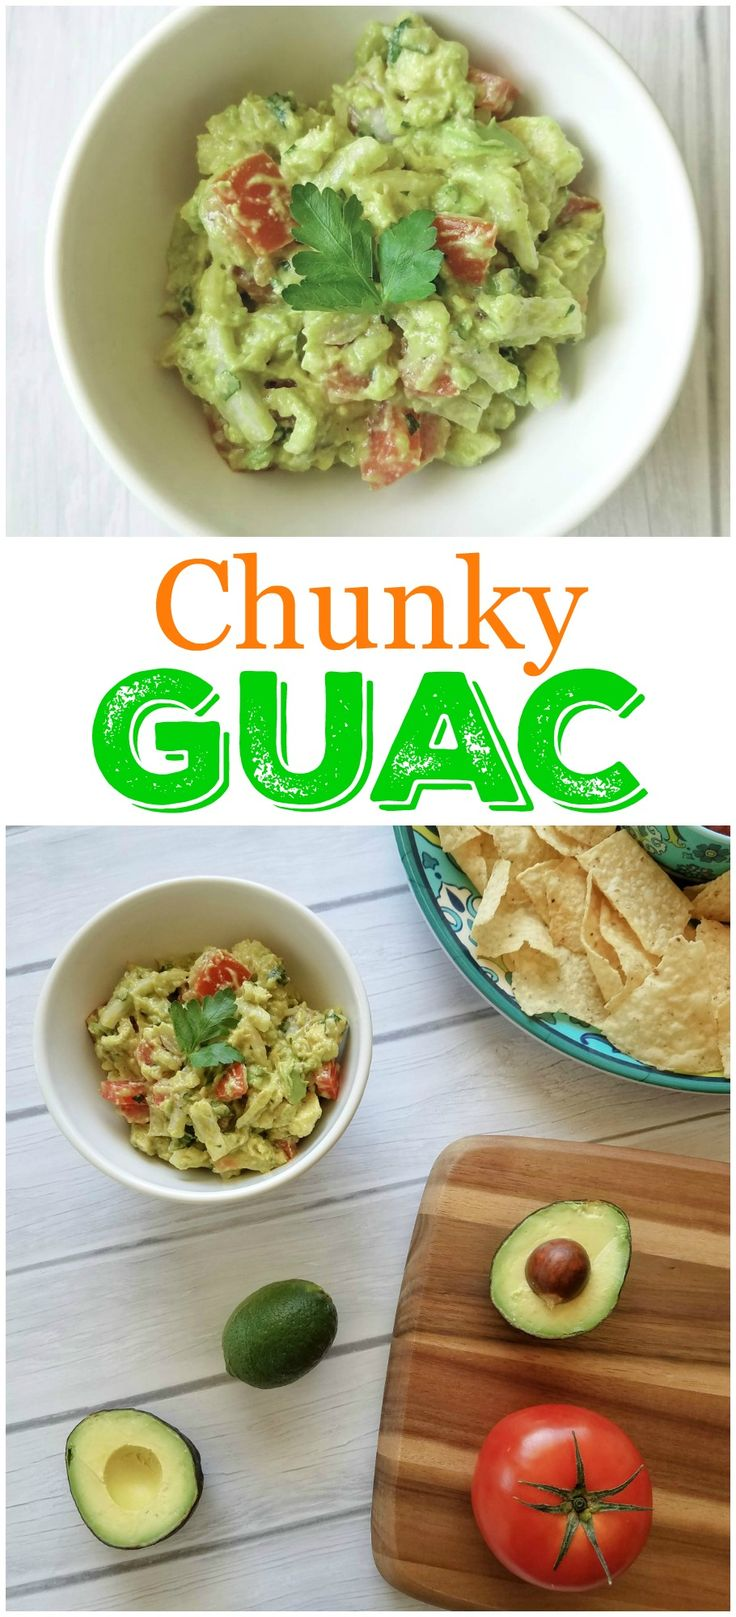 This chunky guacamole is bursting with fresh flavors. You will not be able to stop dipping and you will be devastated when it is gone.